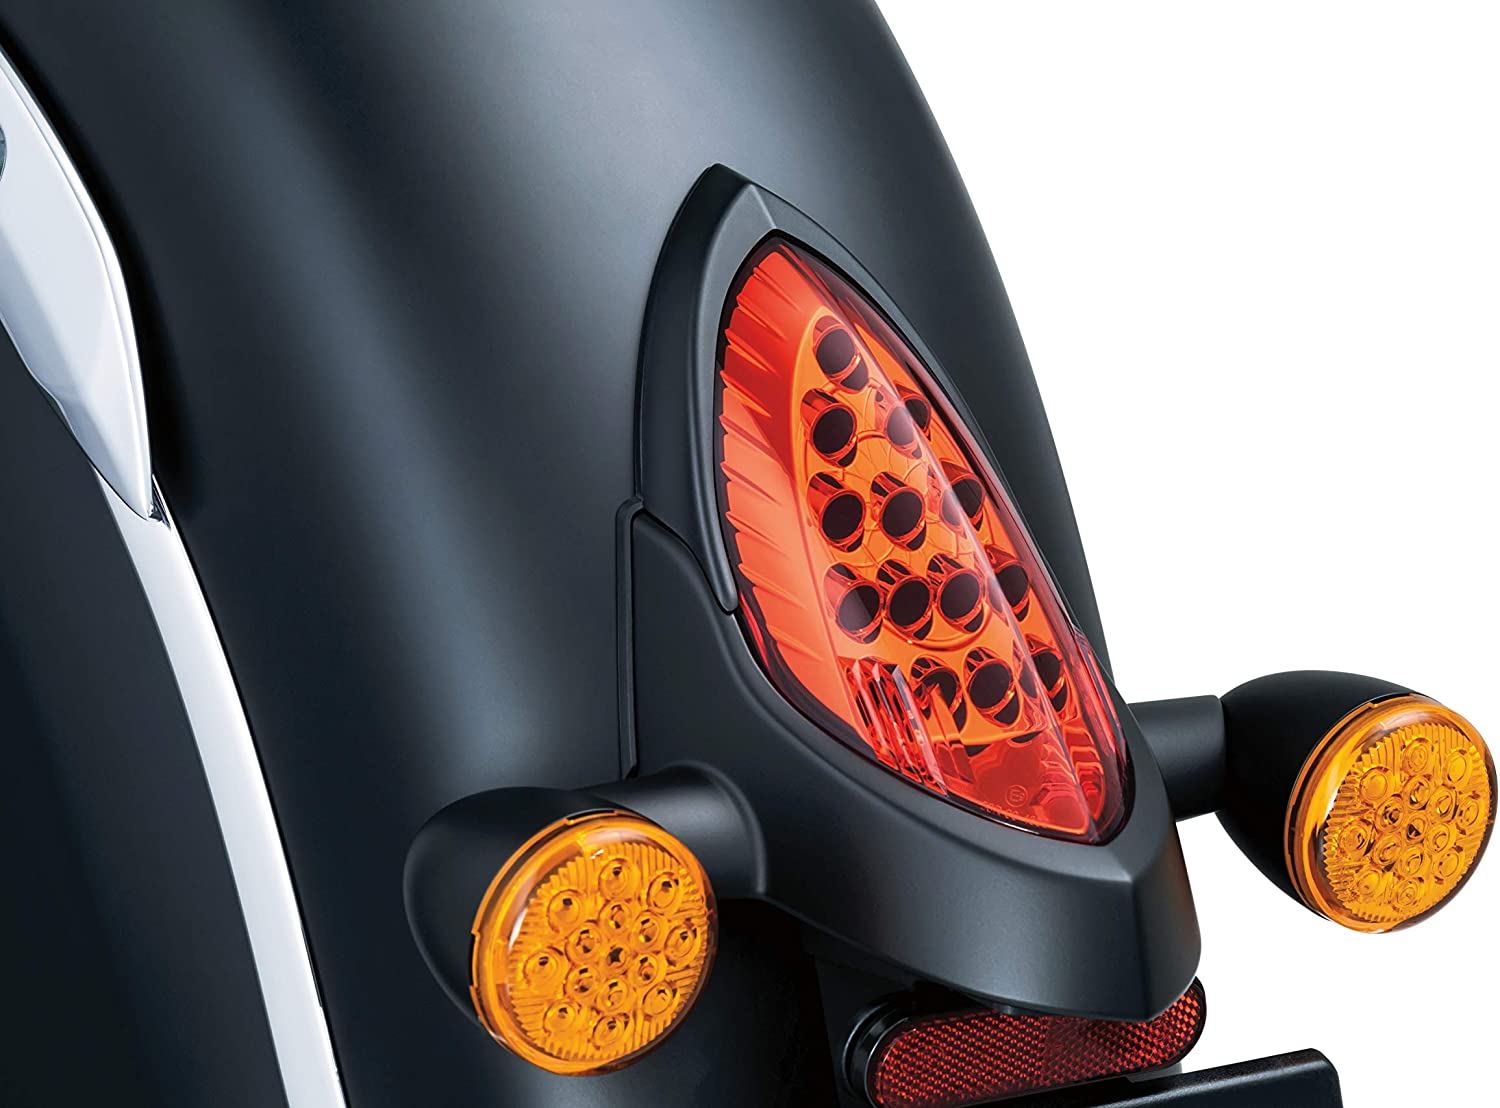 Satin Black Kuryakyn 5623 Motorcycle Accessory Taillight Top Trim Accent for 2014-2019 Indian Motorcycles